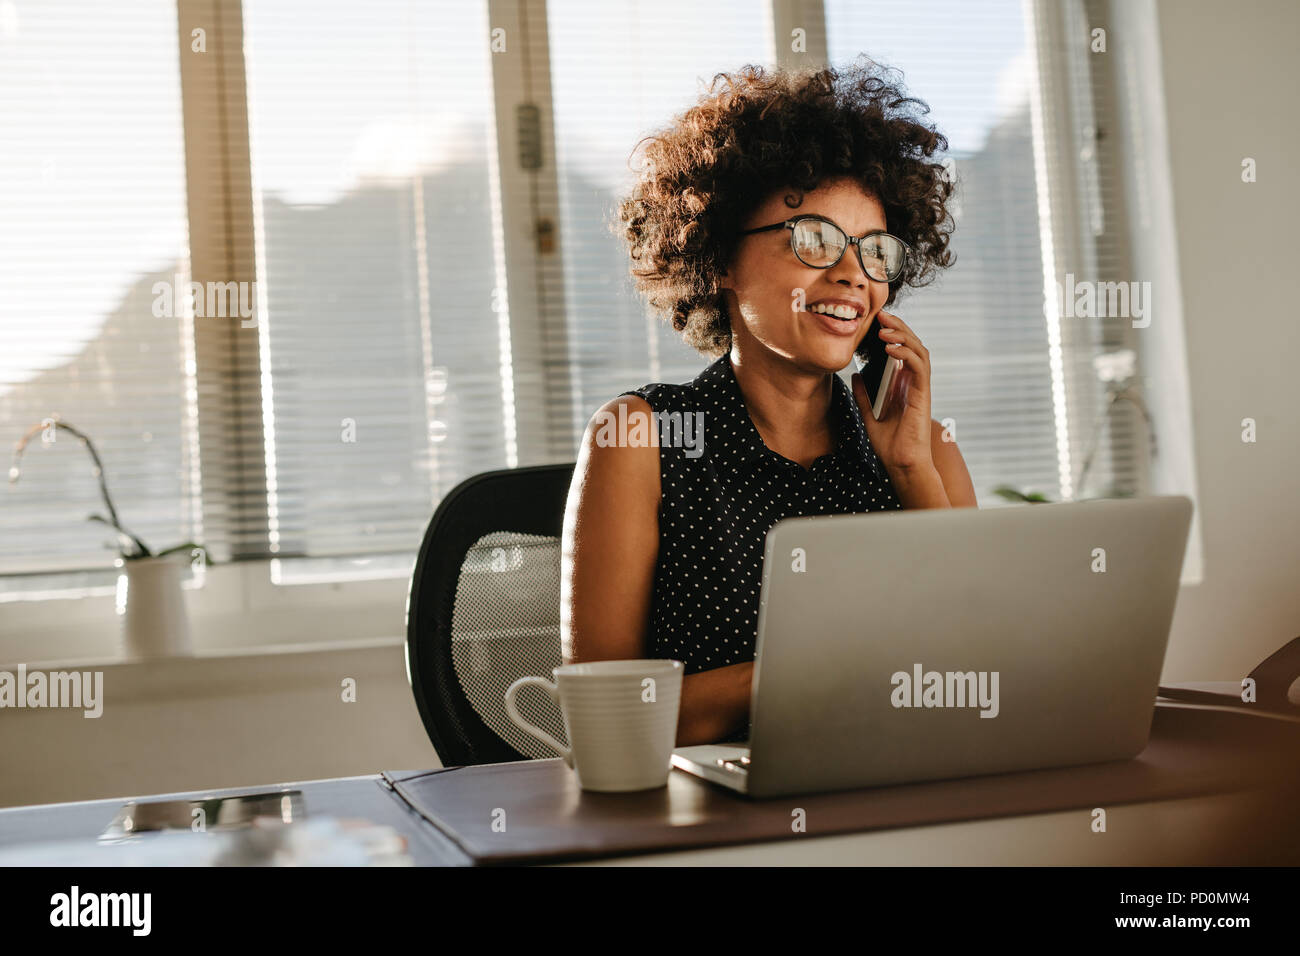 Young african woman working at her desk with laptop and talking on phone. Female wearing casual attire working at a startup office. - Stock Image